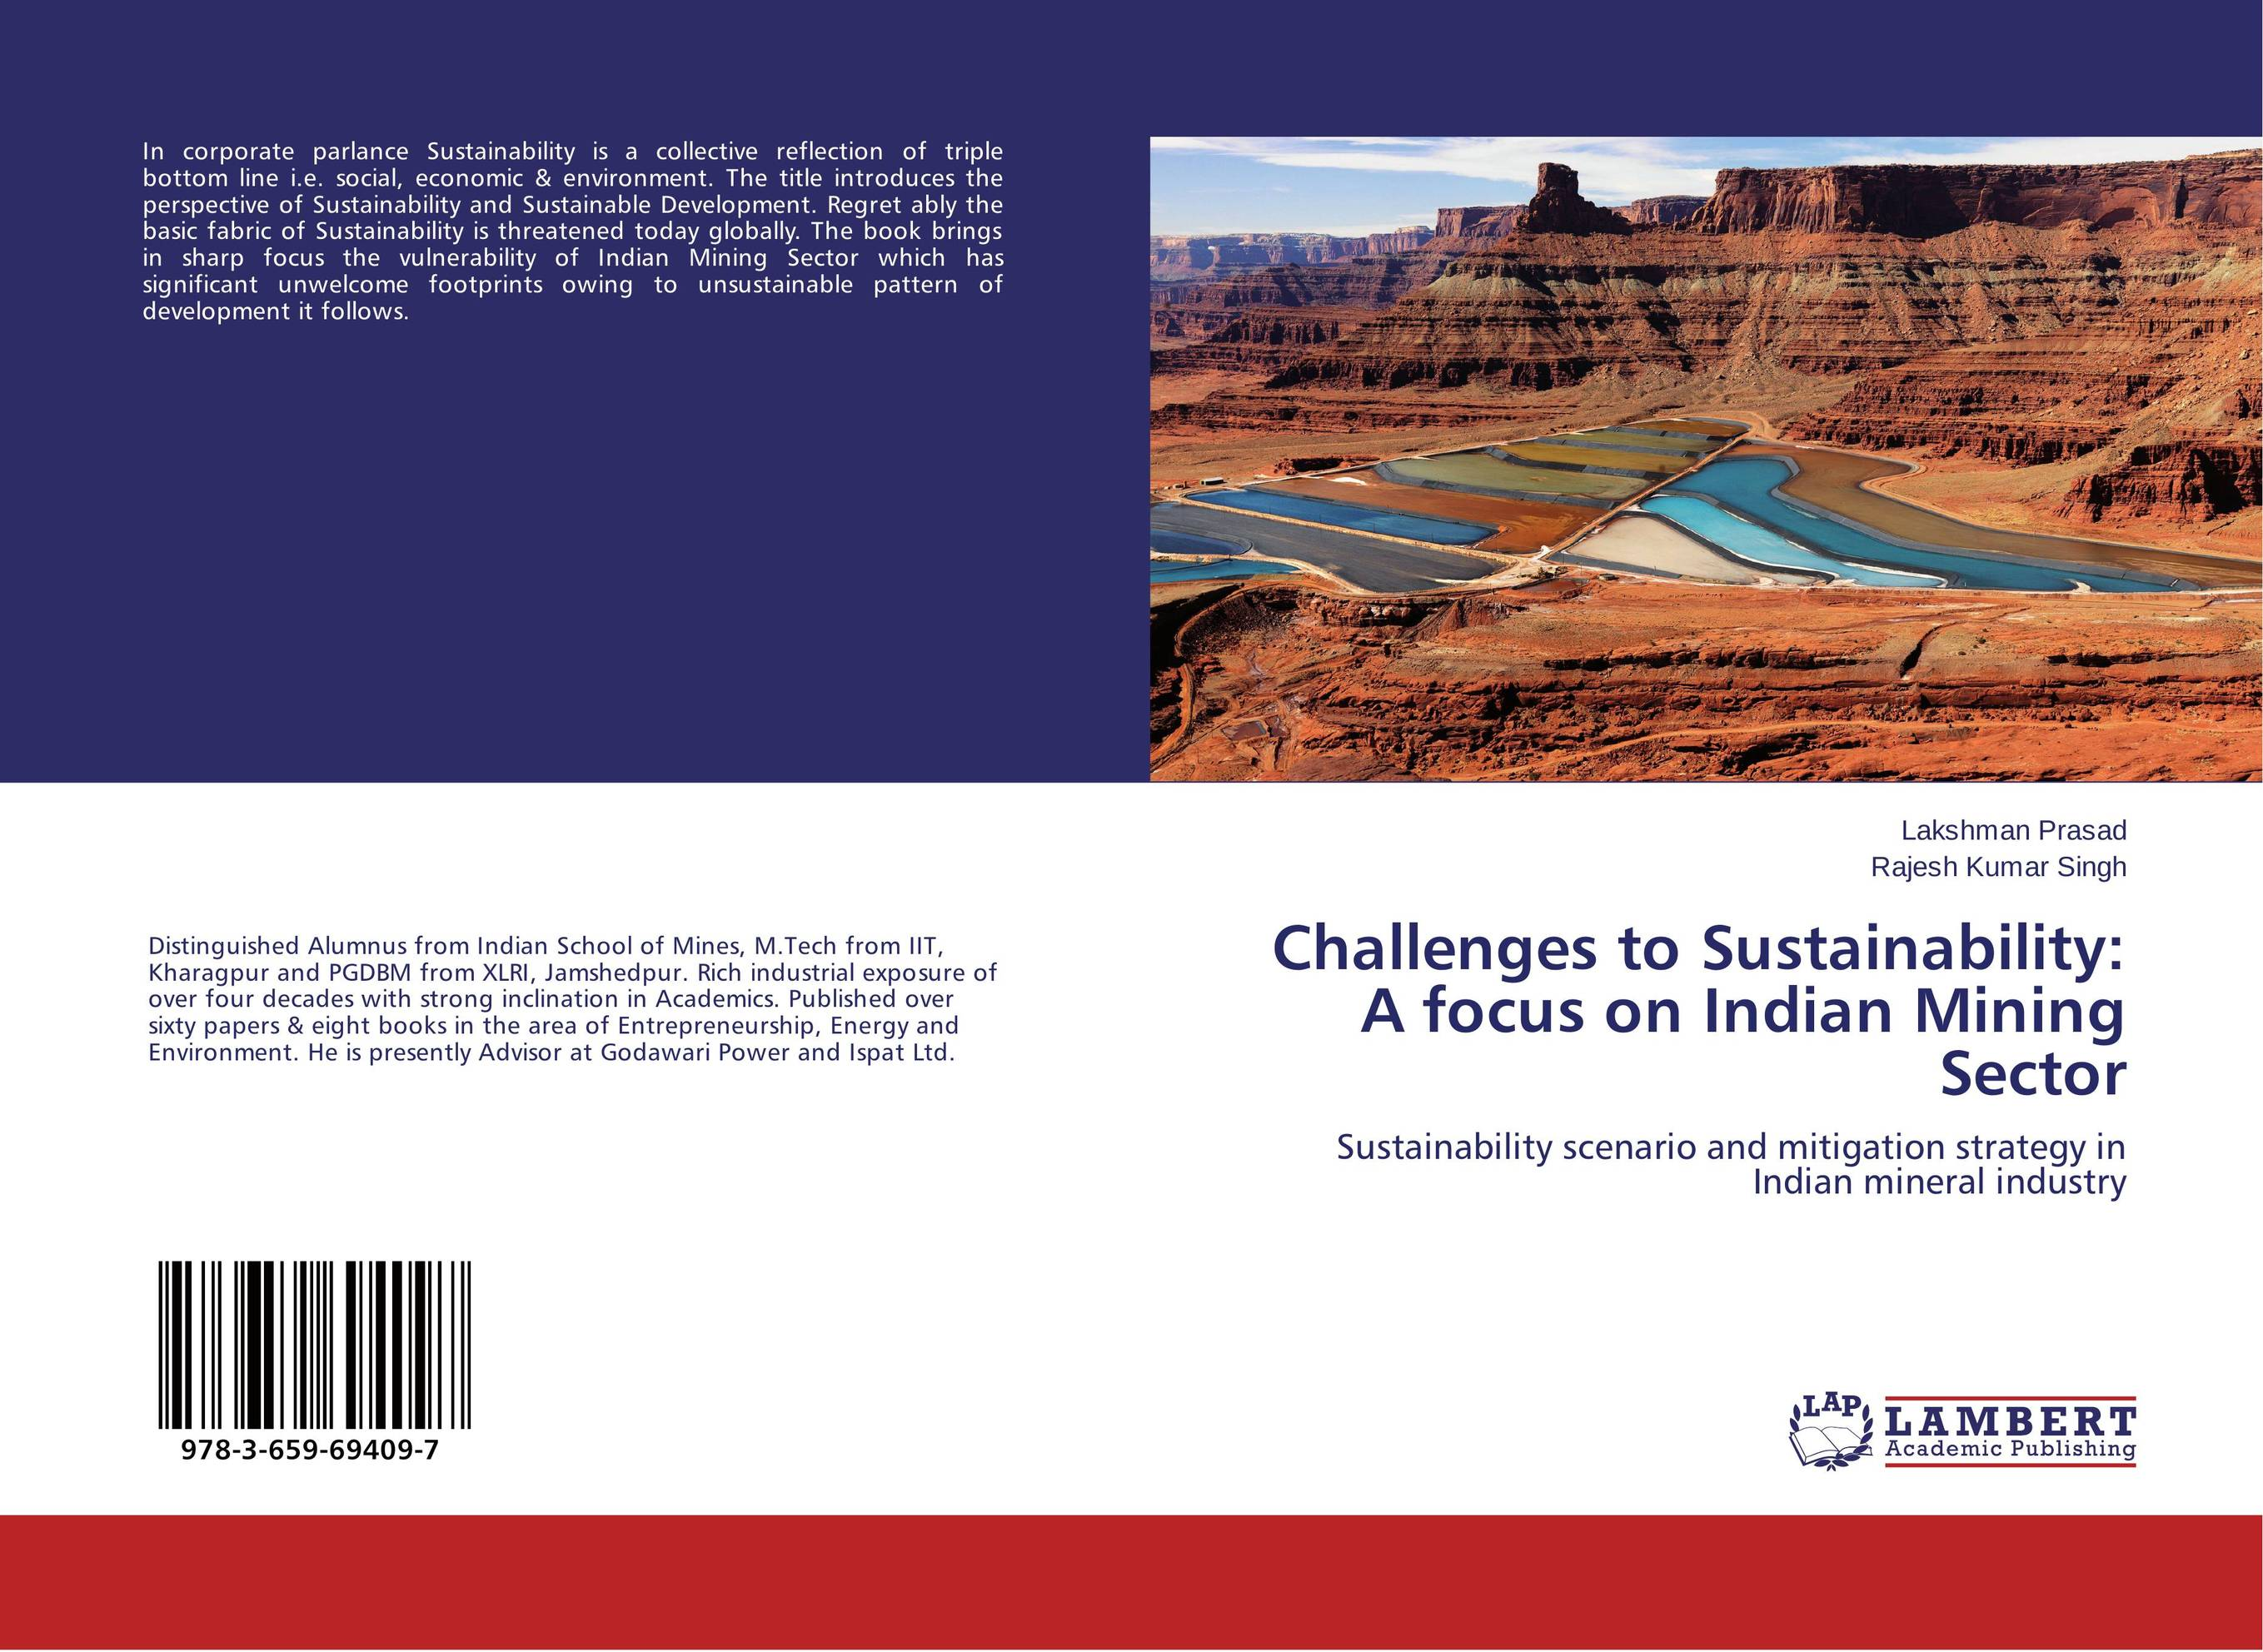 Challenges to Sustainability: A focus on Indian Mining Sector zabihollah rezaee corporate sustainability integrating performance and reporting